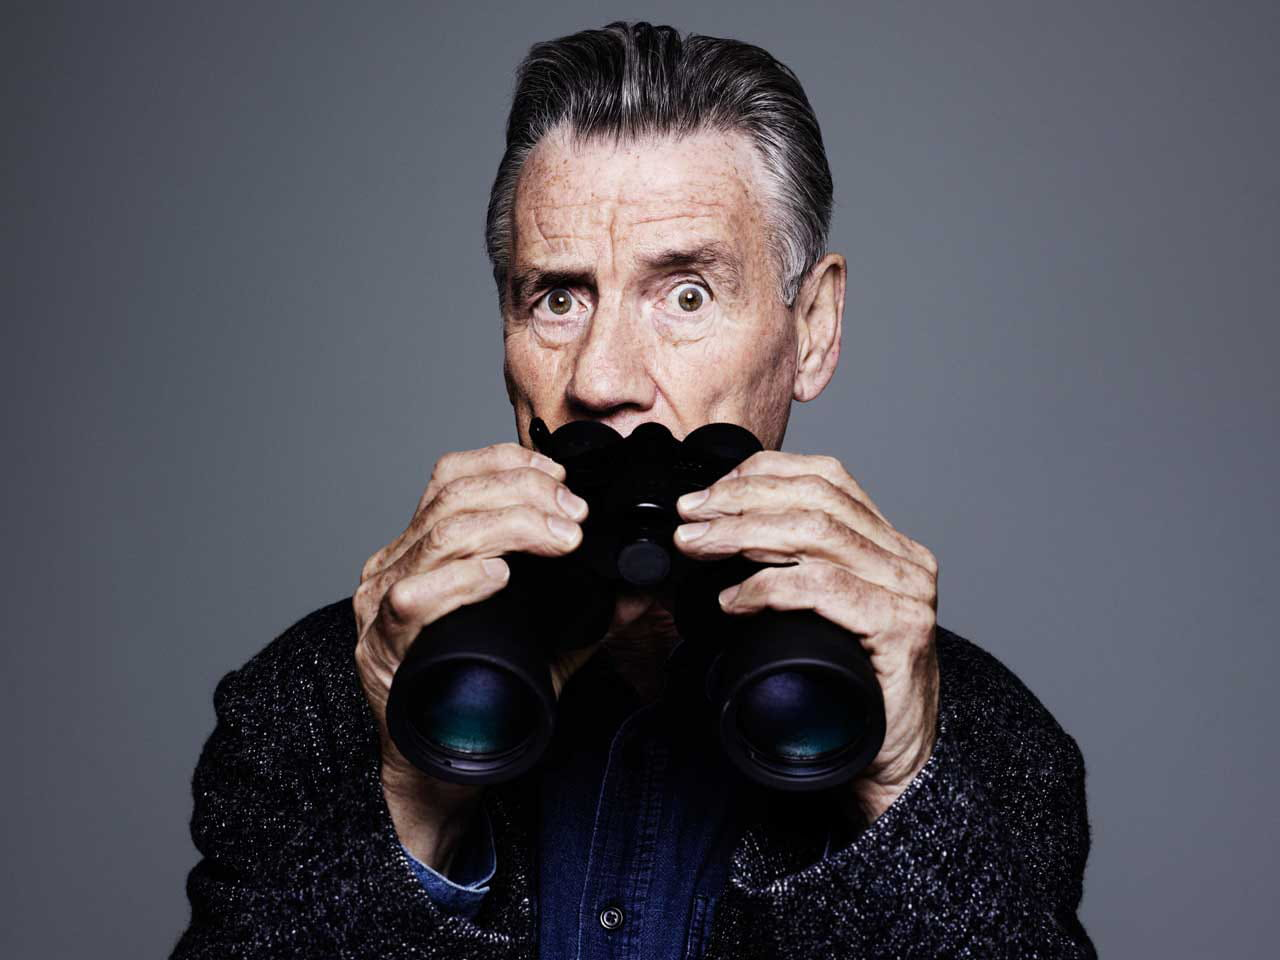 Actor Michael Palin holds a pair on binoculars